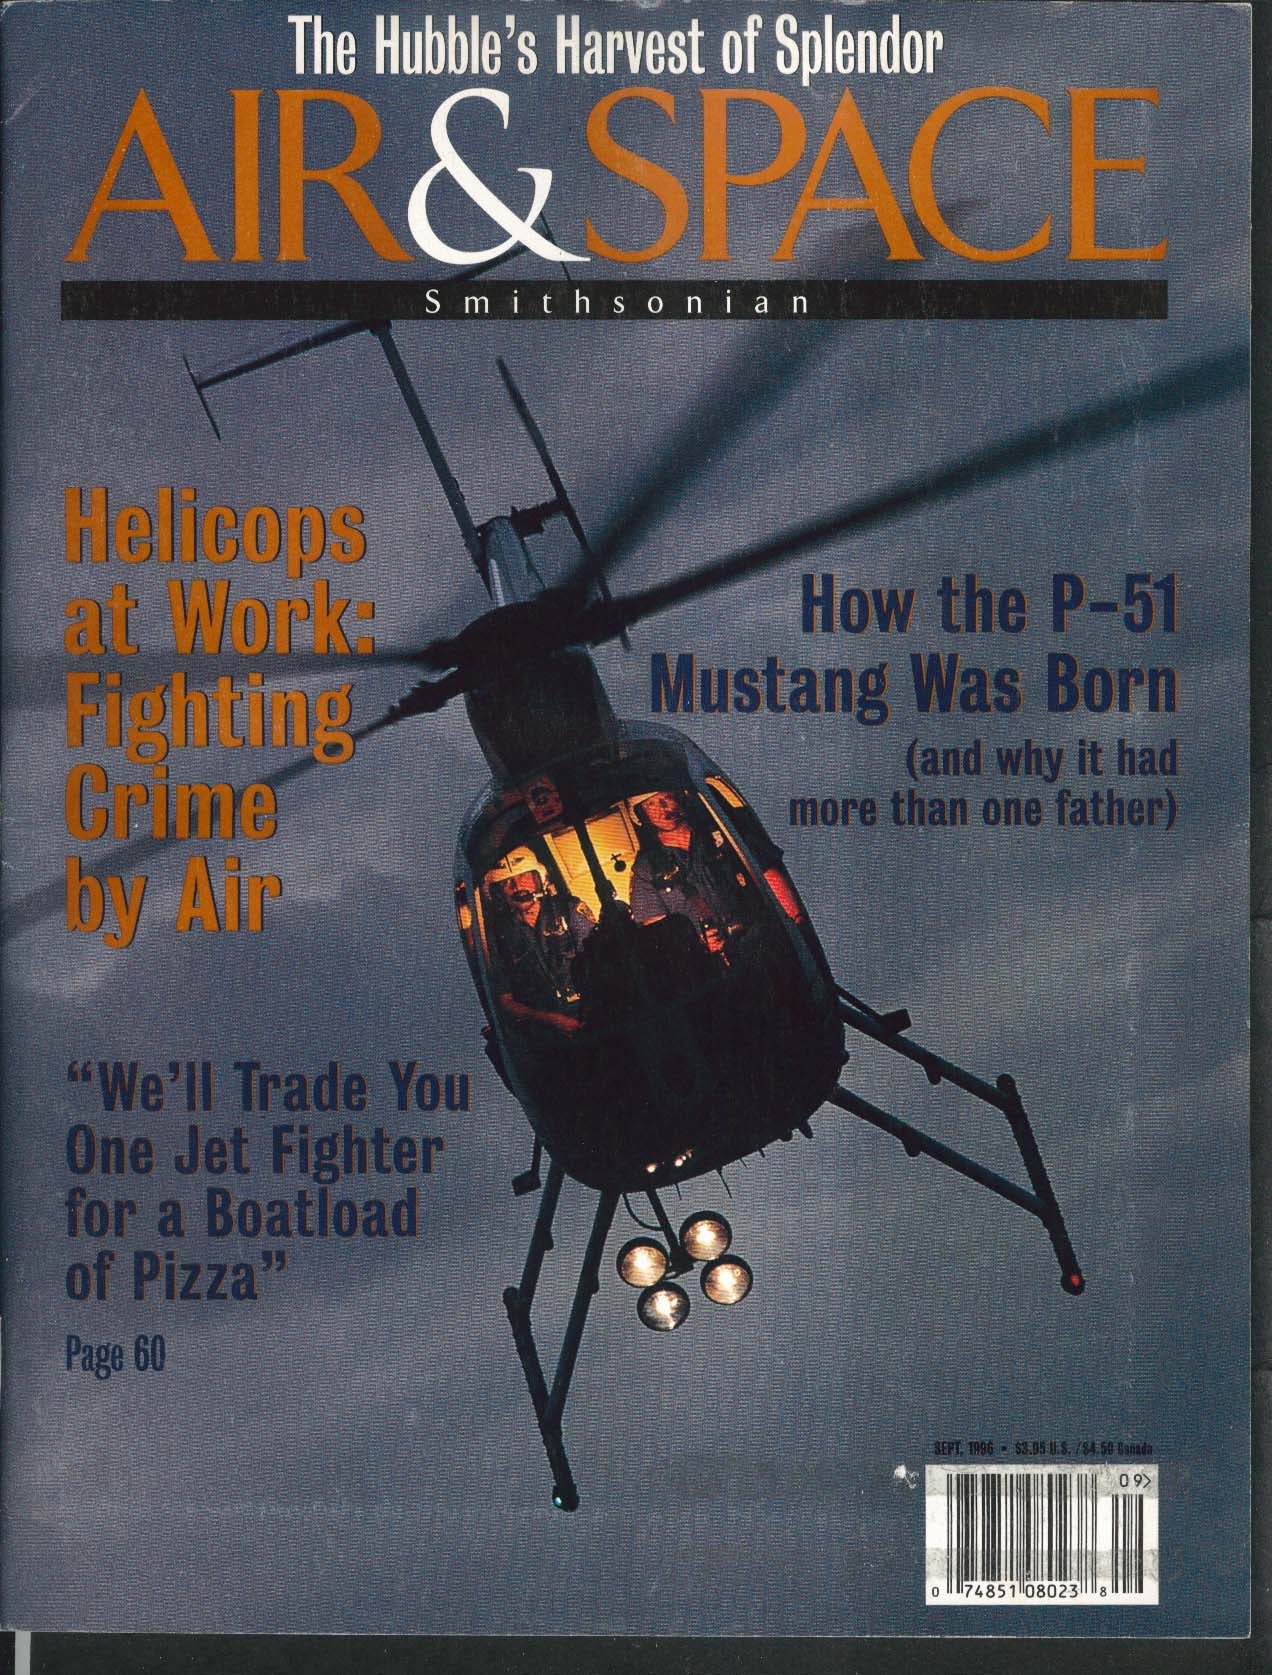 AIR & SPACE Smithsonian Police Helicopters P-51 Mustang Hubble Telescope 9 1996